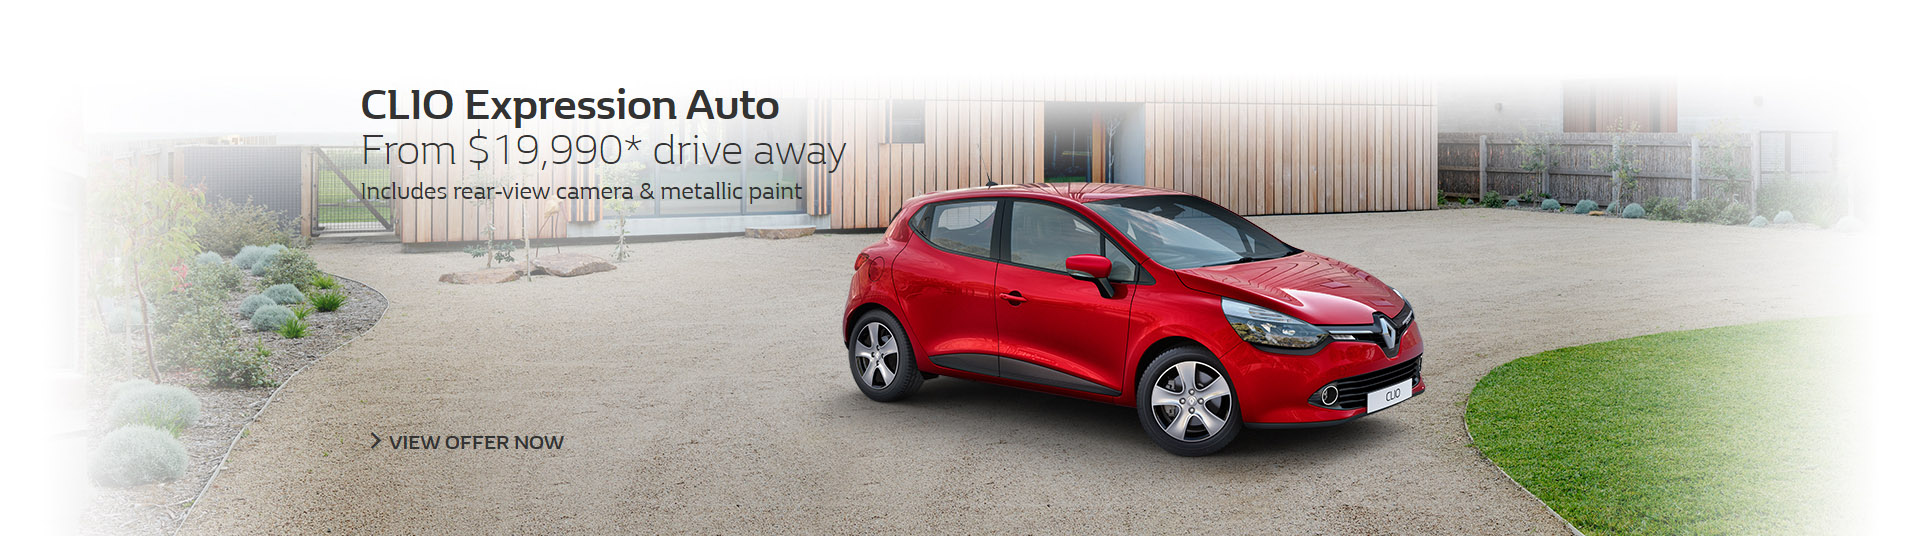 Renault Clio Expression auto from $19,990 drive away at Metro Renault Brisbane.